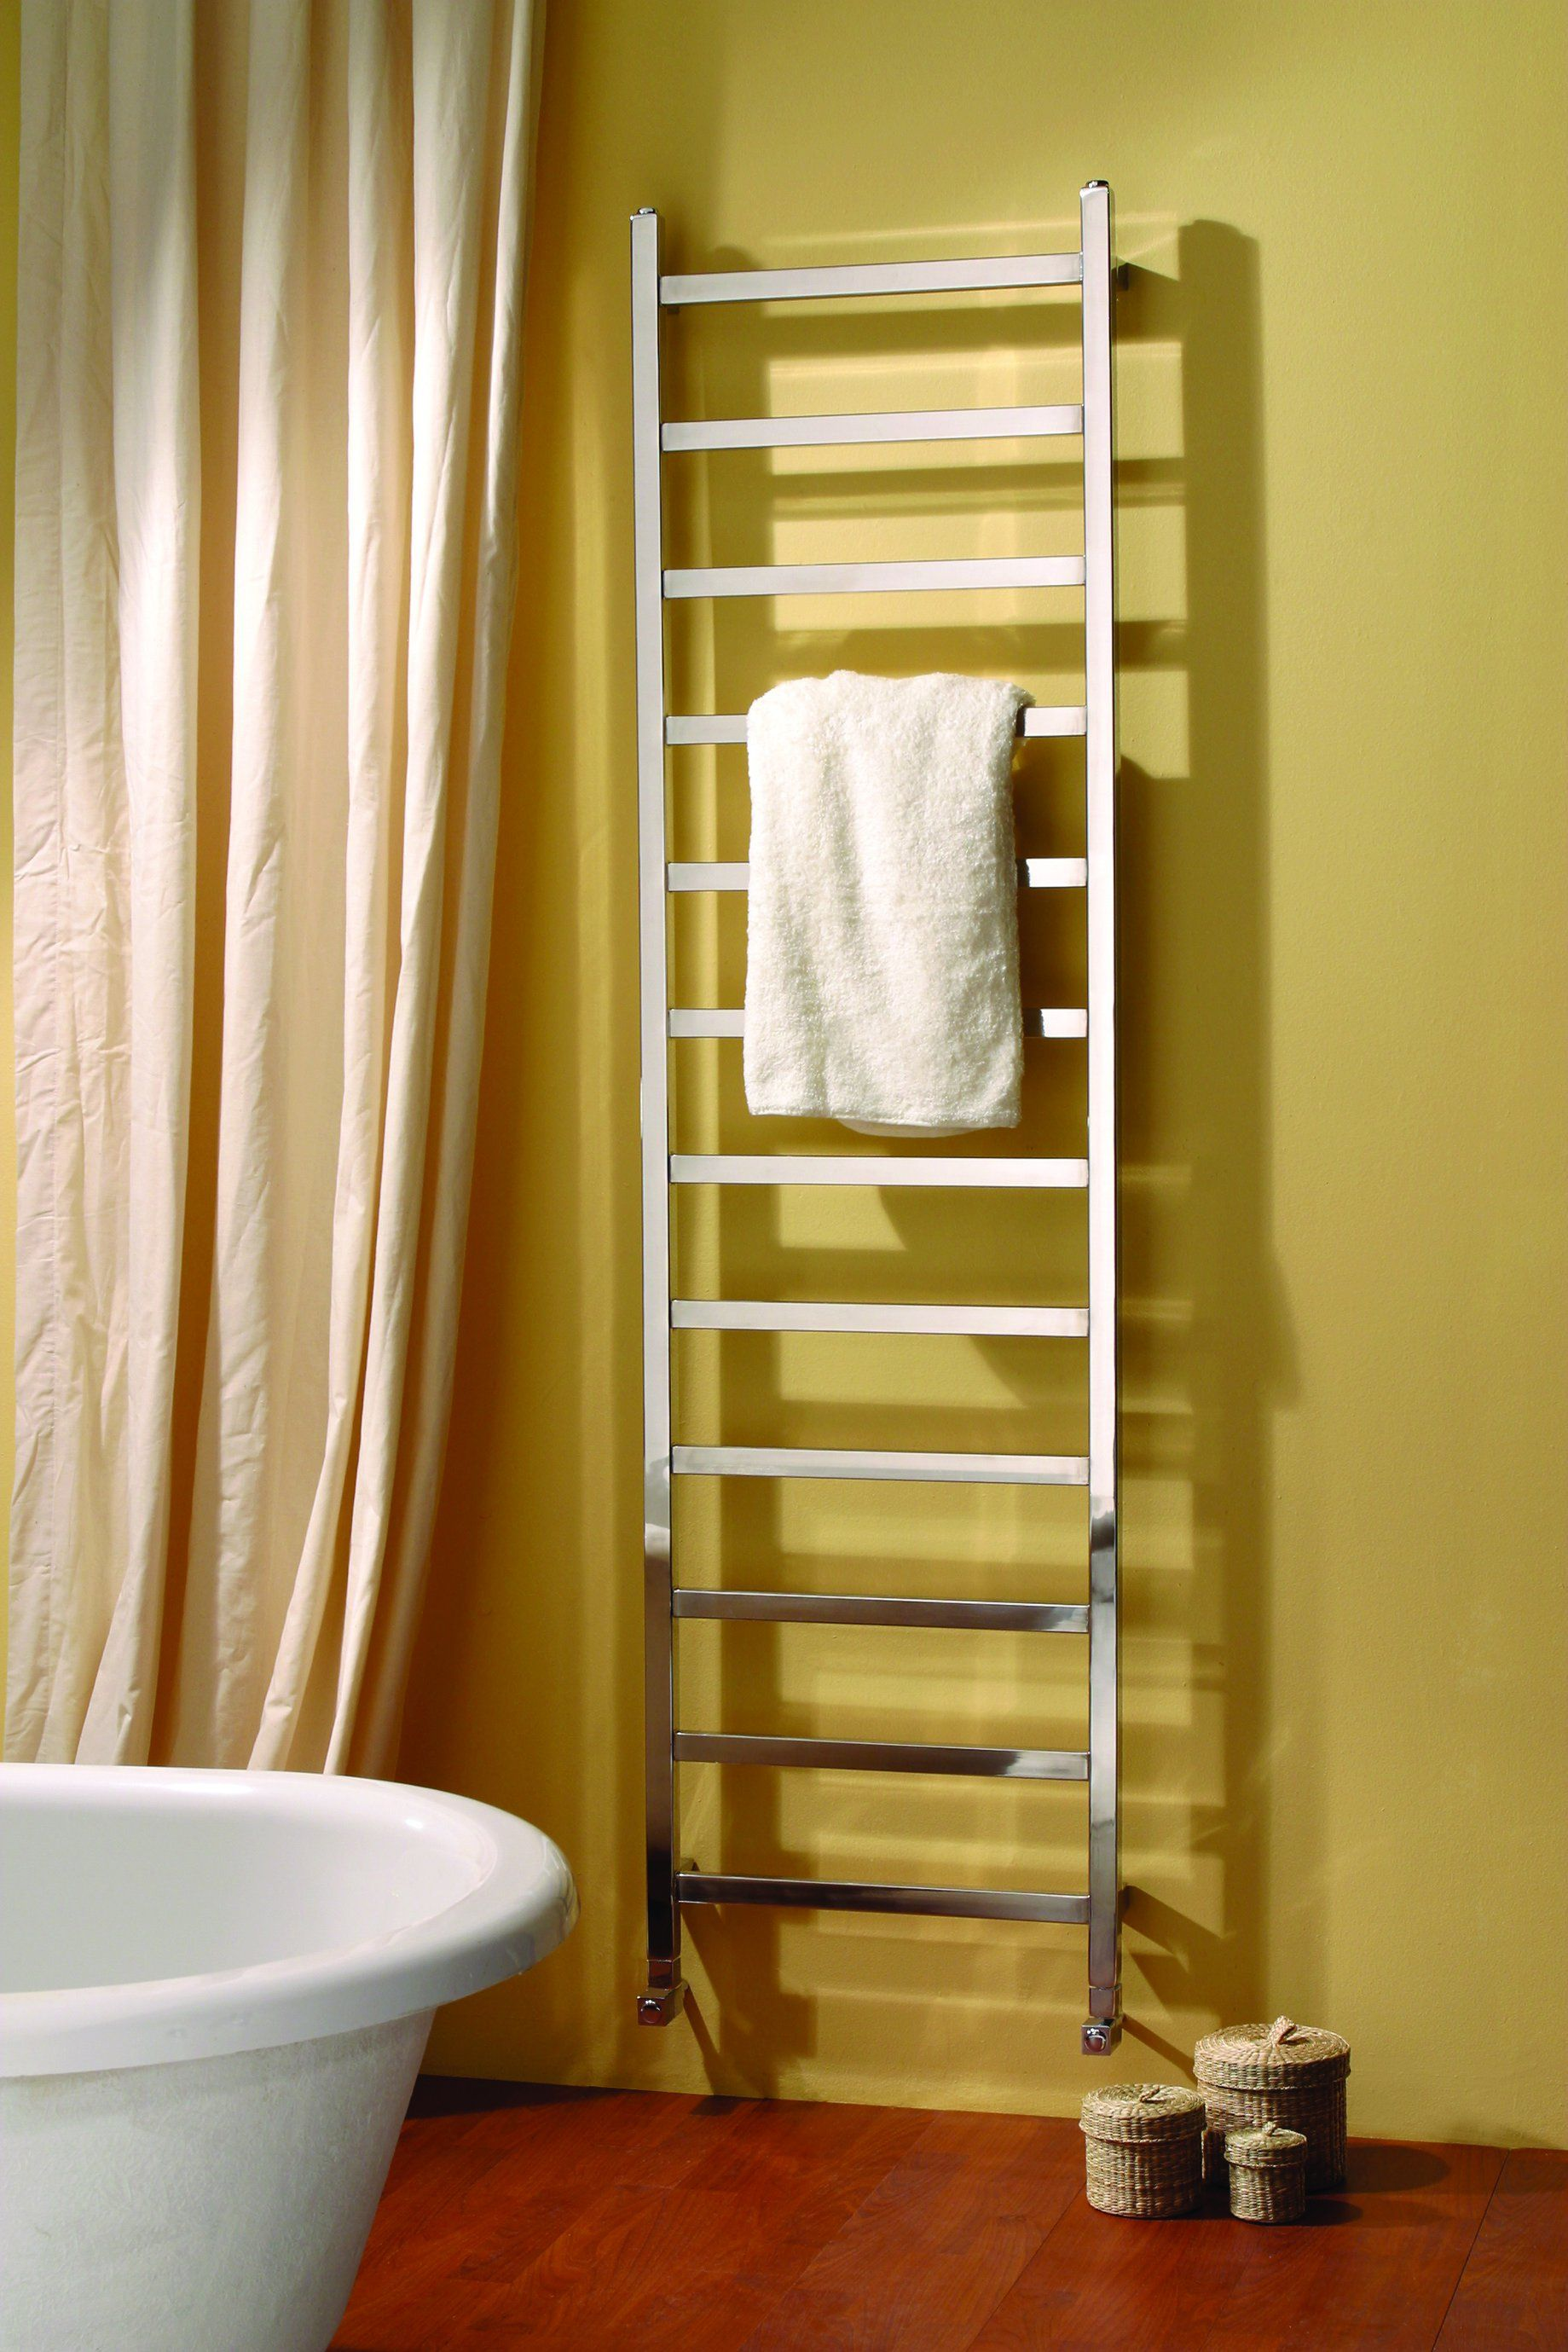 MHS Climber Polished Stainless Steel Towel Rail